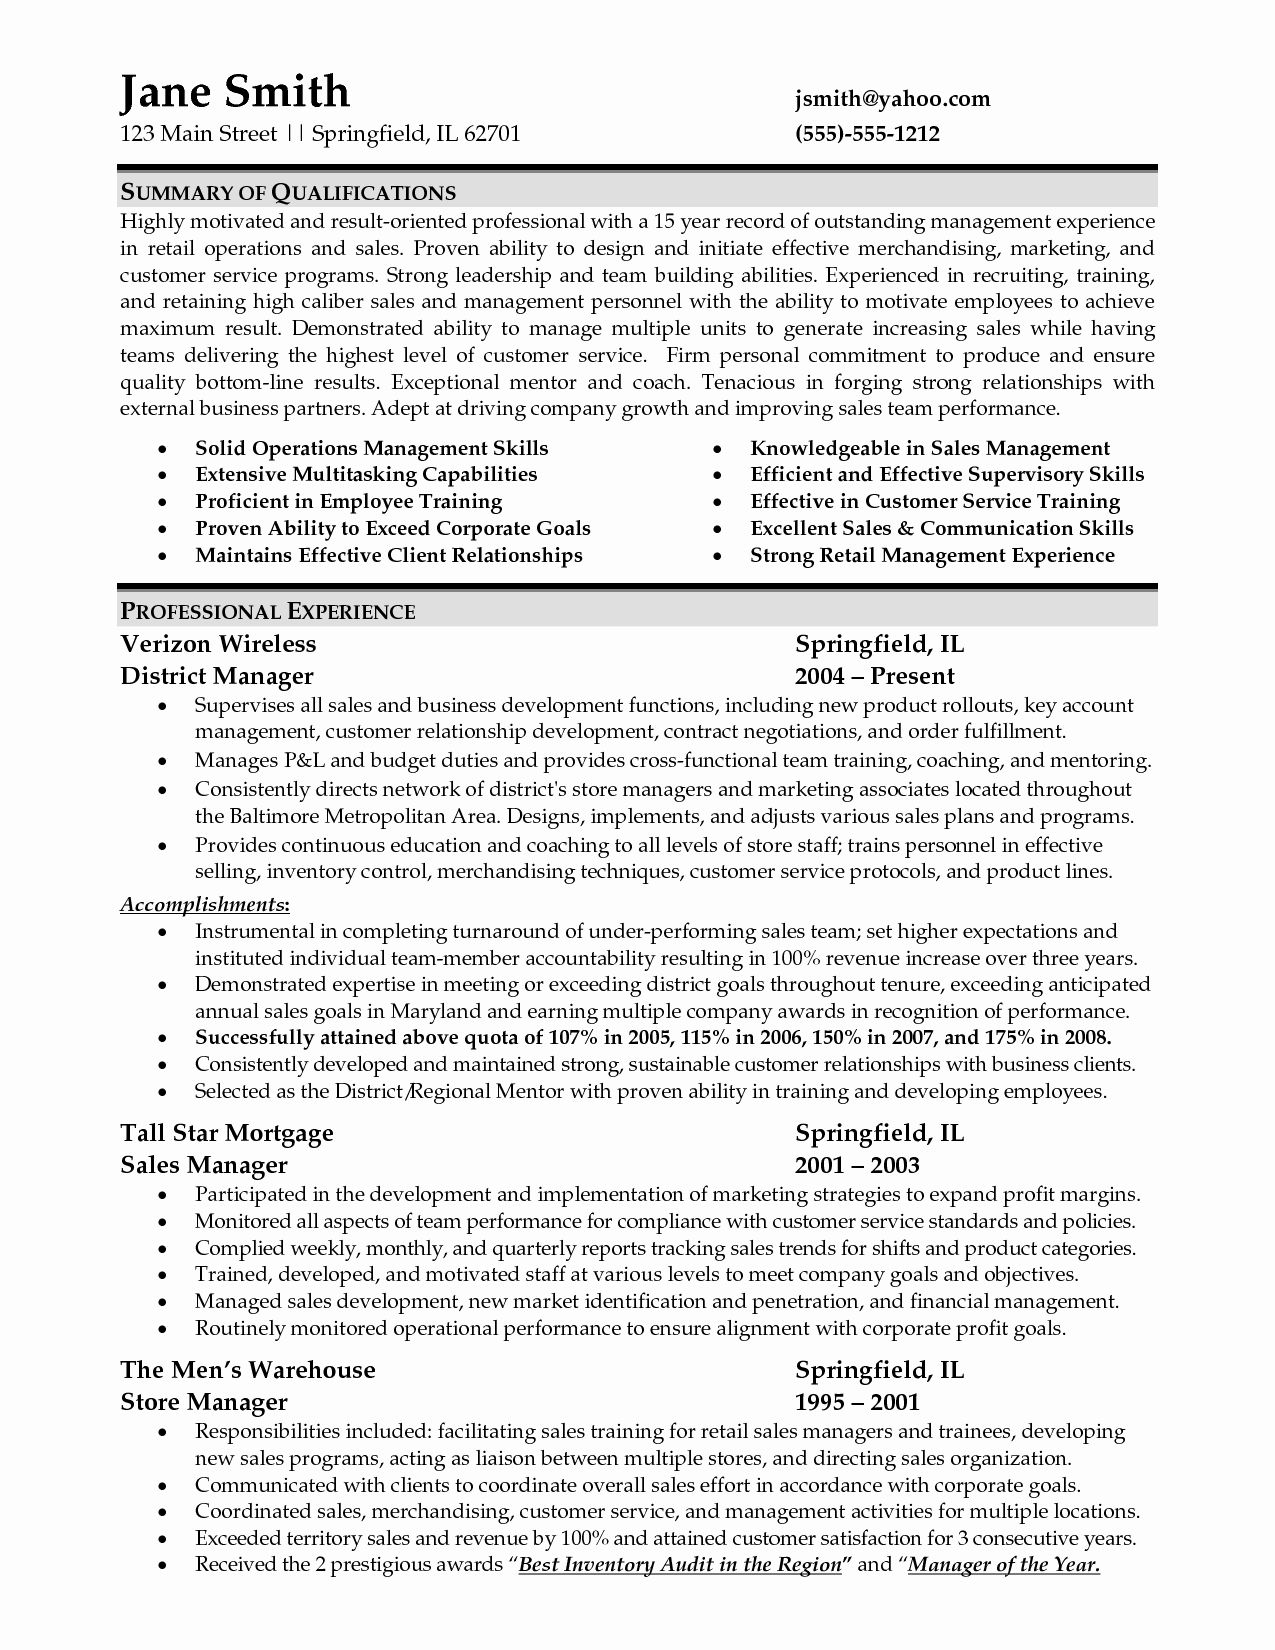 Resume Summary Examples for Retail Unique Sample Resume